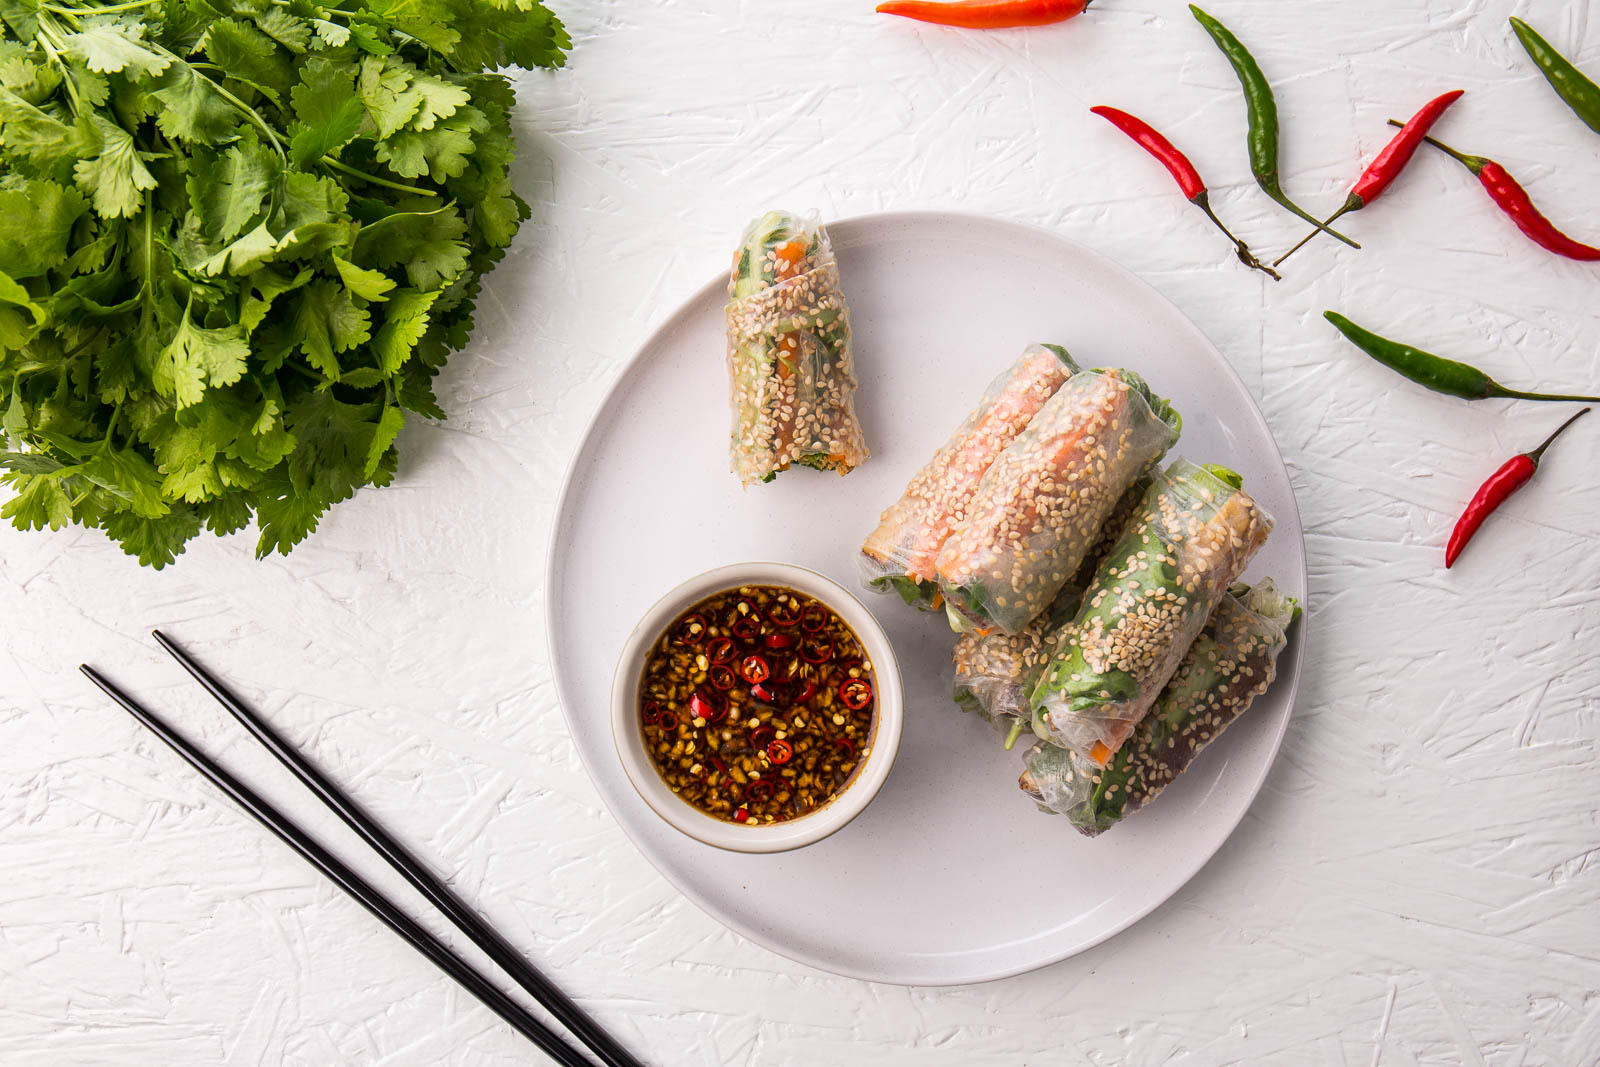 Vietnamese spring rolls with a vegetarian twist, featuring smoked tofu to make delightfully aromatic, crispy, crunchy tofu summer rolls which are vegetarian and vegan. You can make these in the kitchen to wow your guests or build them at the table so everyone can get their hands dirty.